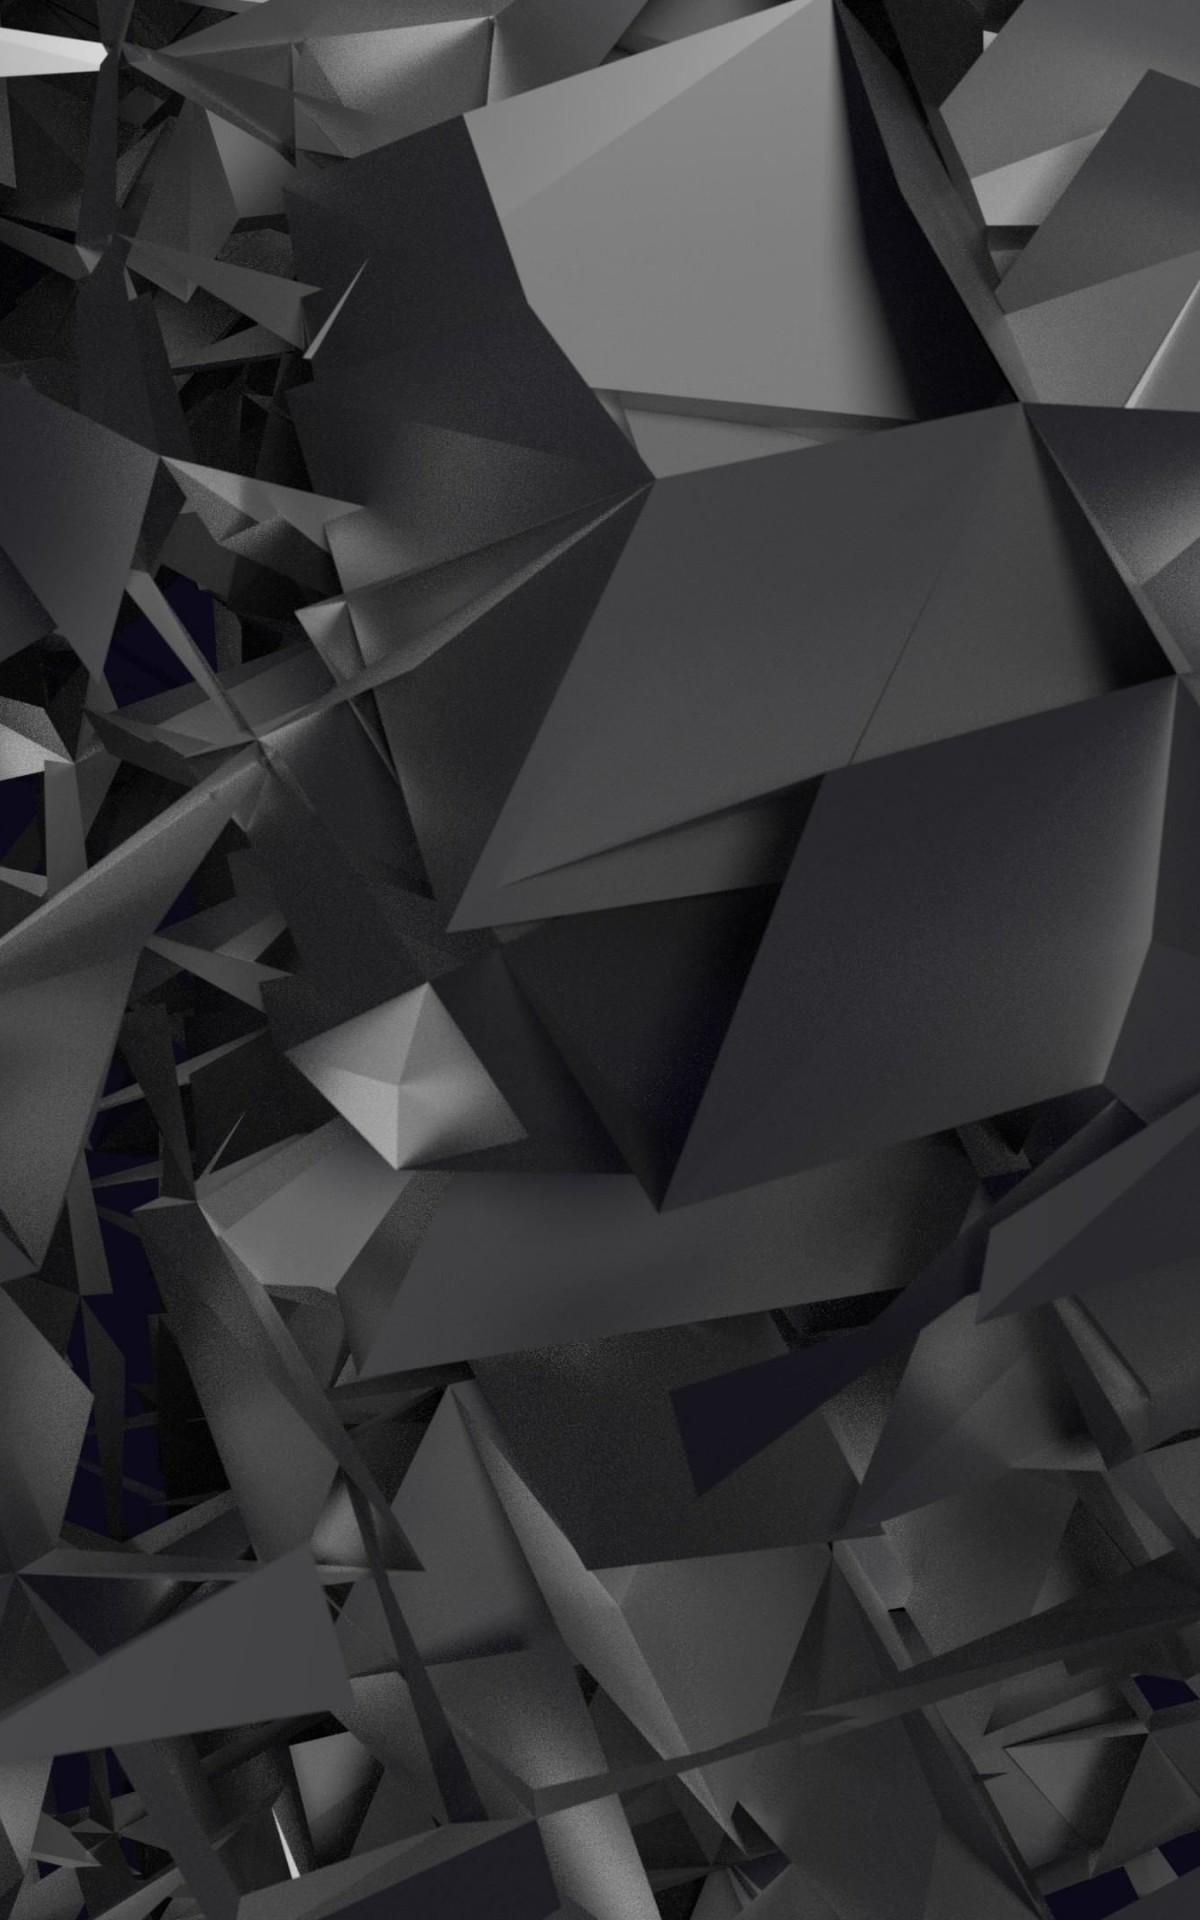 3D Geometry Wallpaper for Amazon Kindle Fire HDX